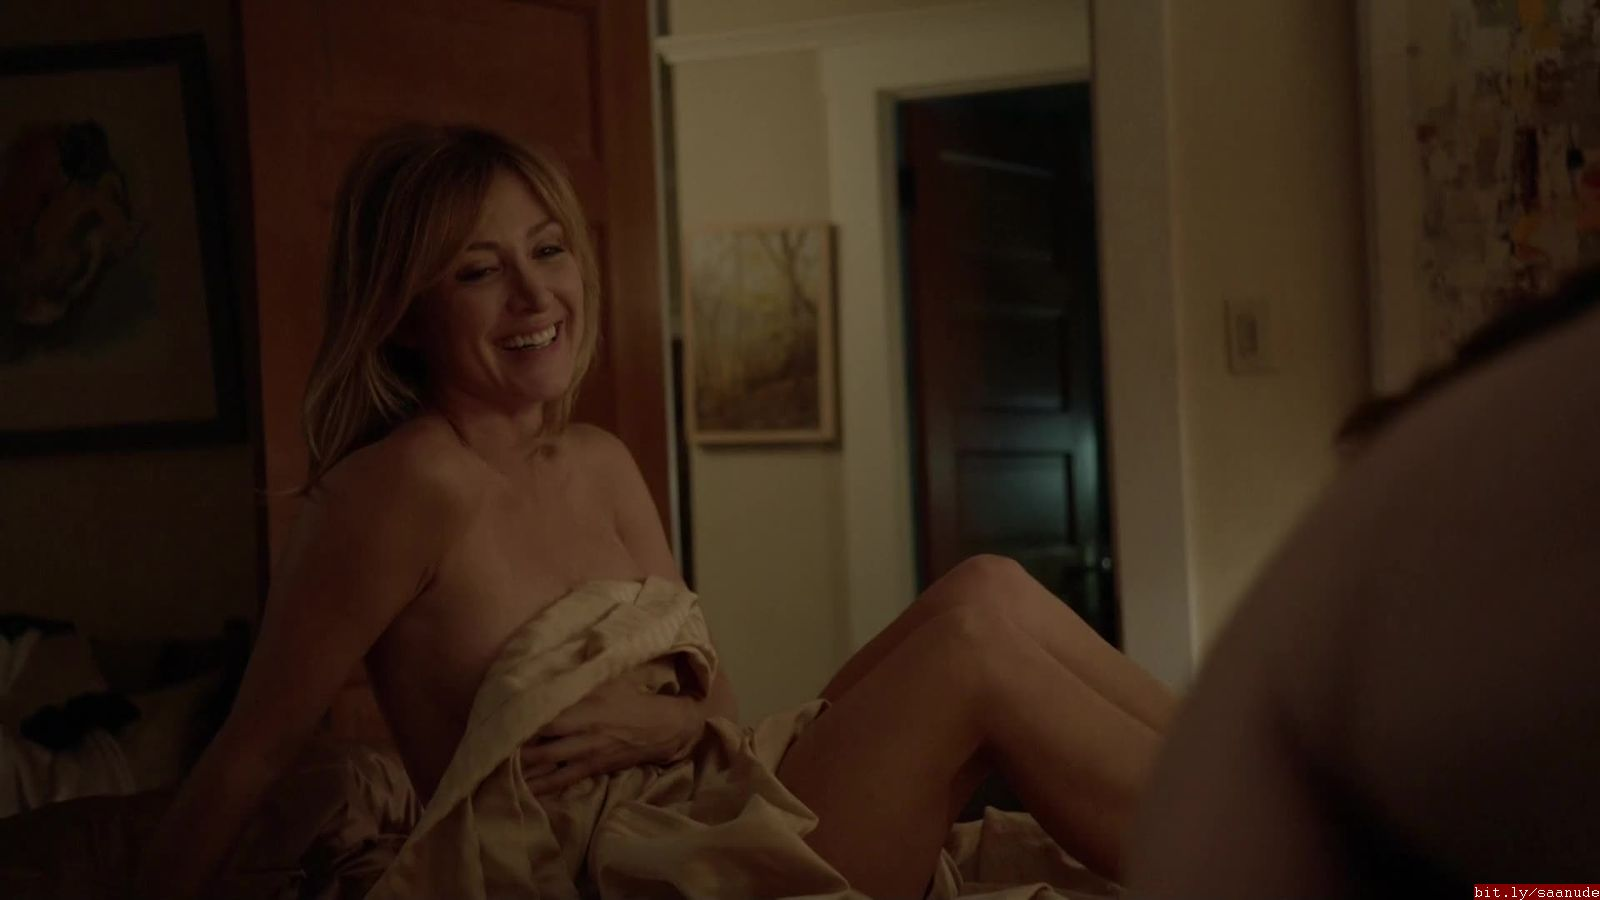 Sasha alexander naked photos consider, that